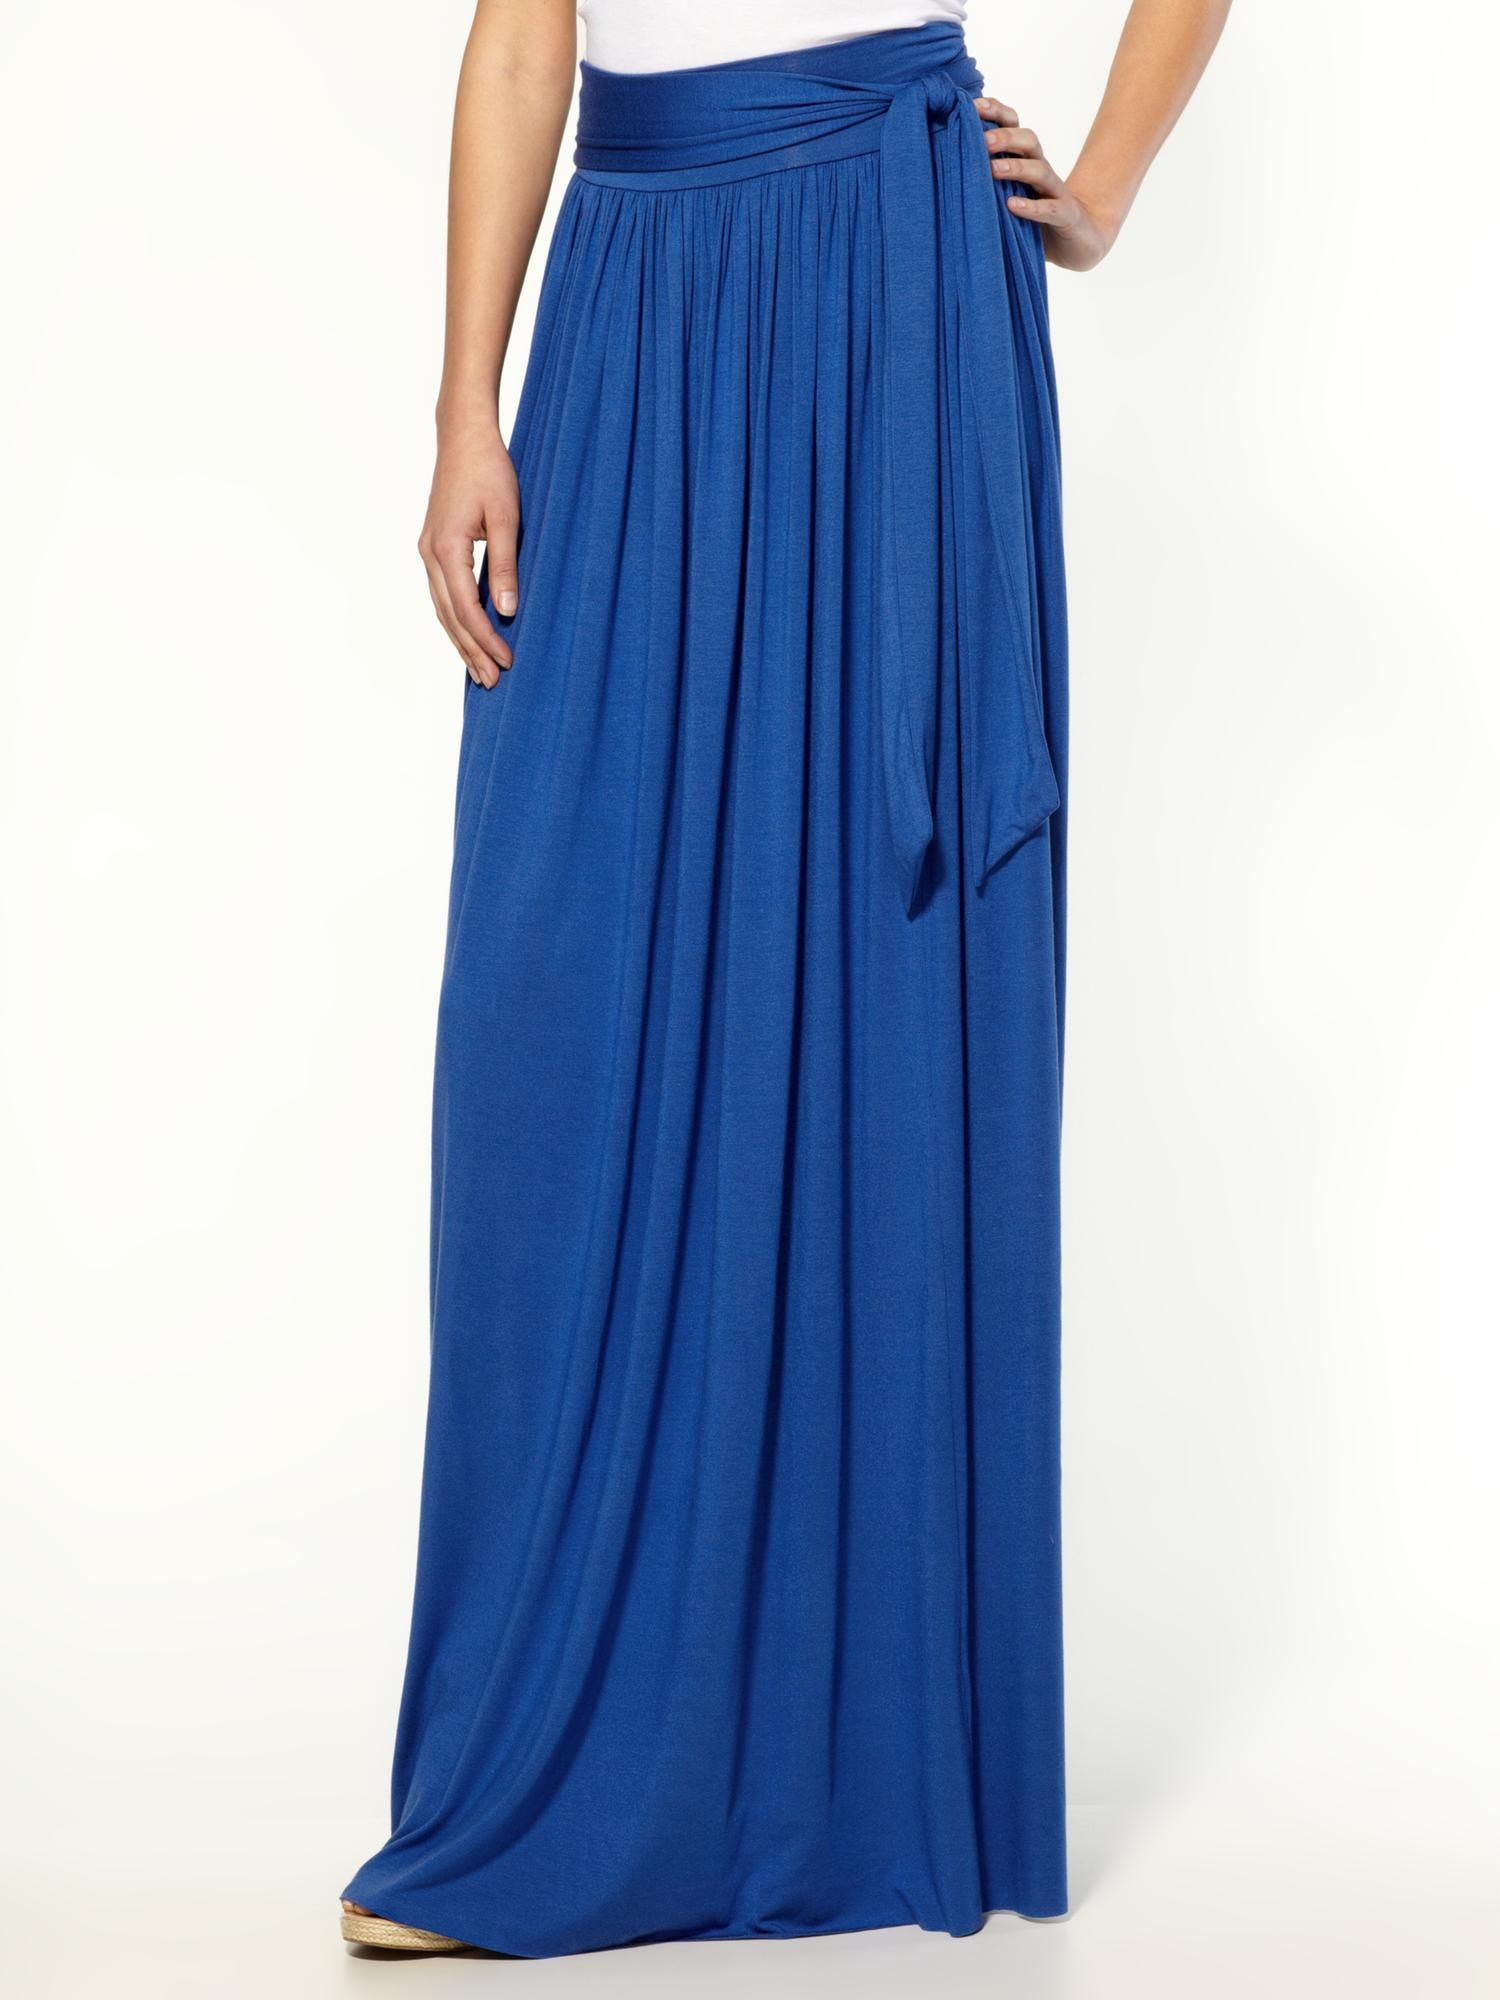 Maxi skirt royal blue super soft jersey style pinterest blue